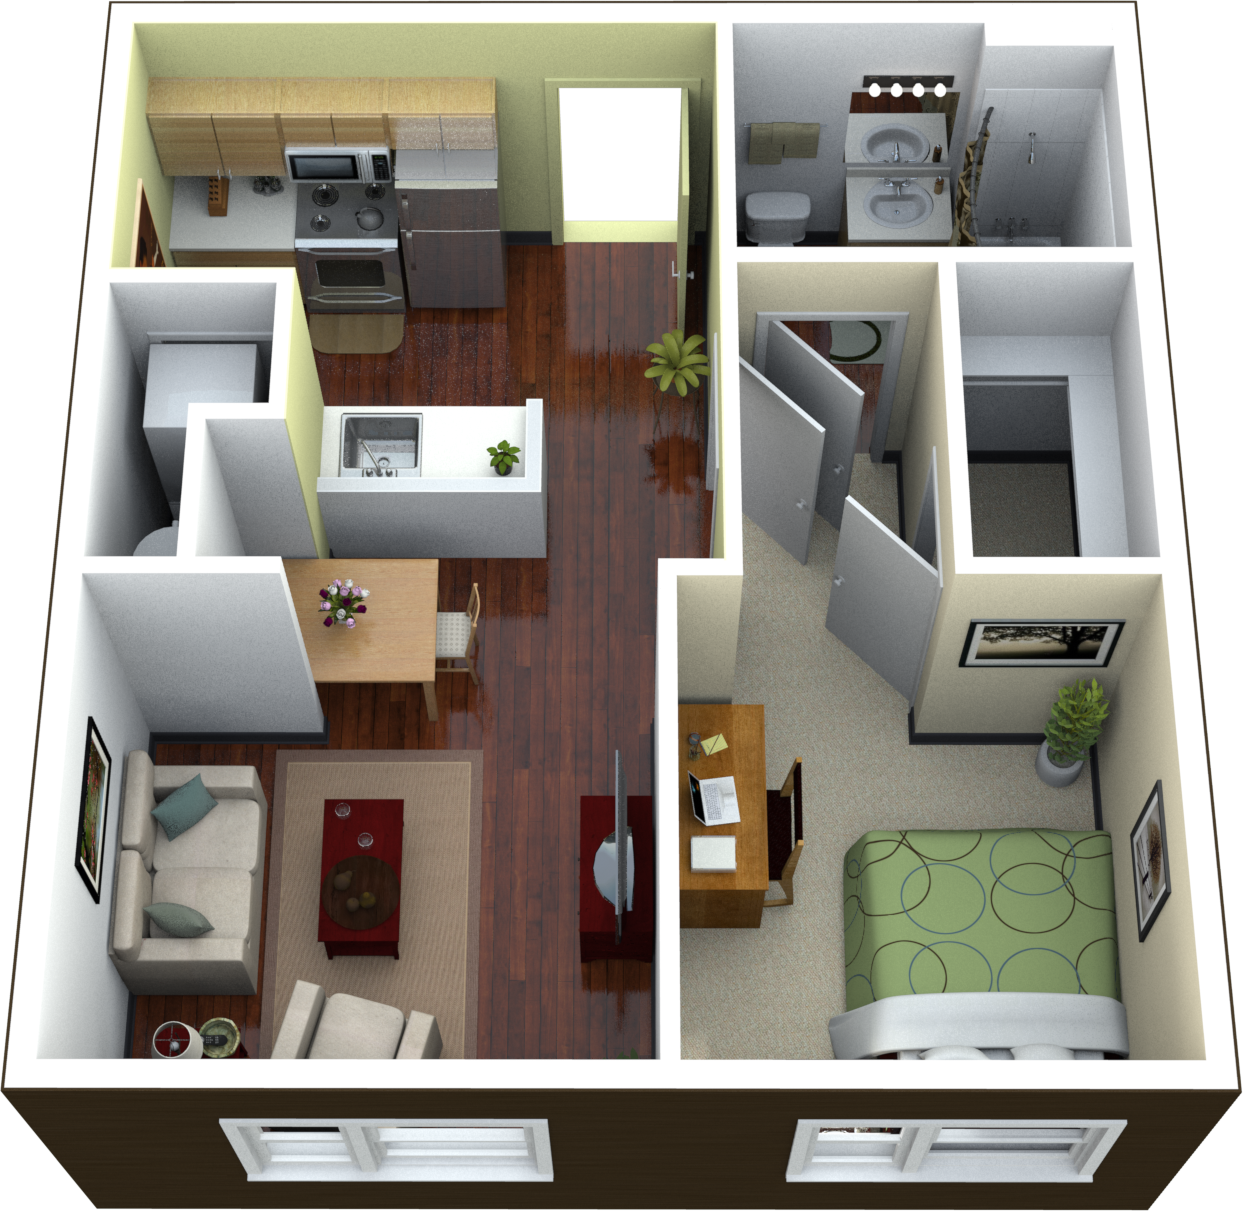 1 bedroom floor plans for apartment design ideas 2017 2018 pinterest garage apartment - One room apartment design plan ...